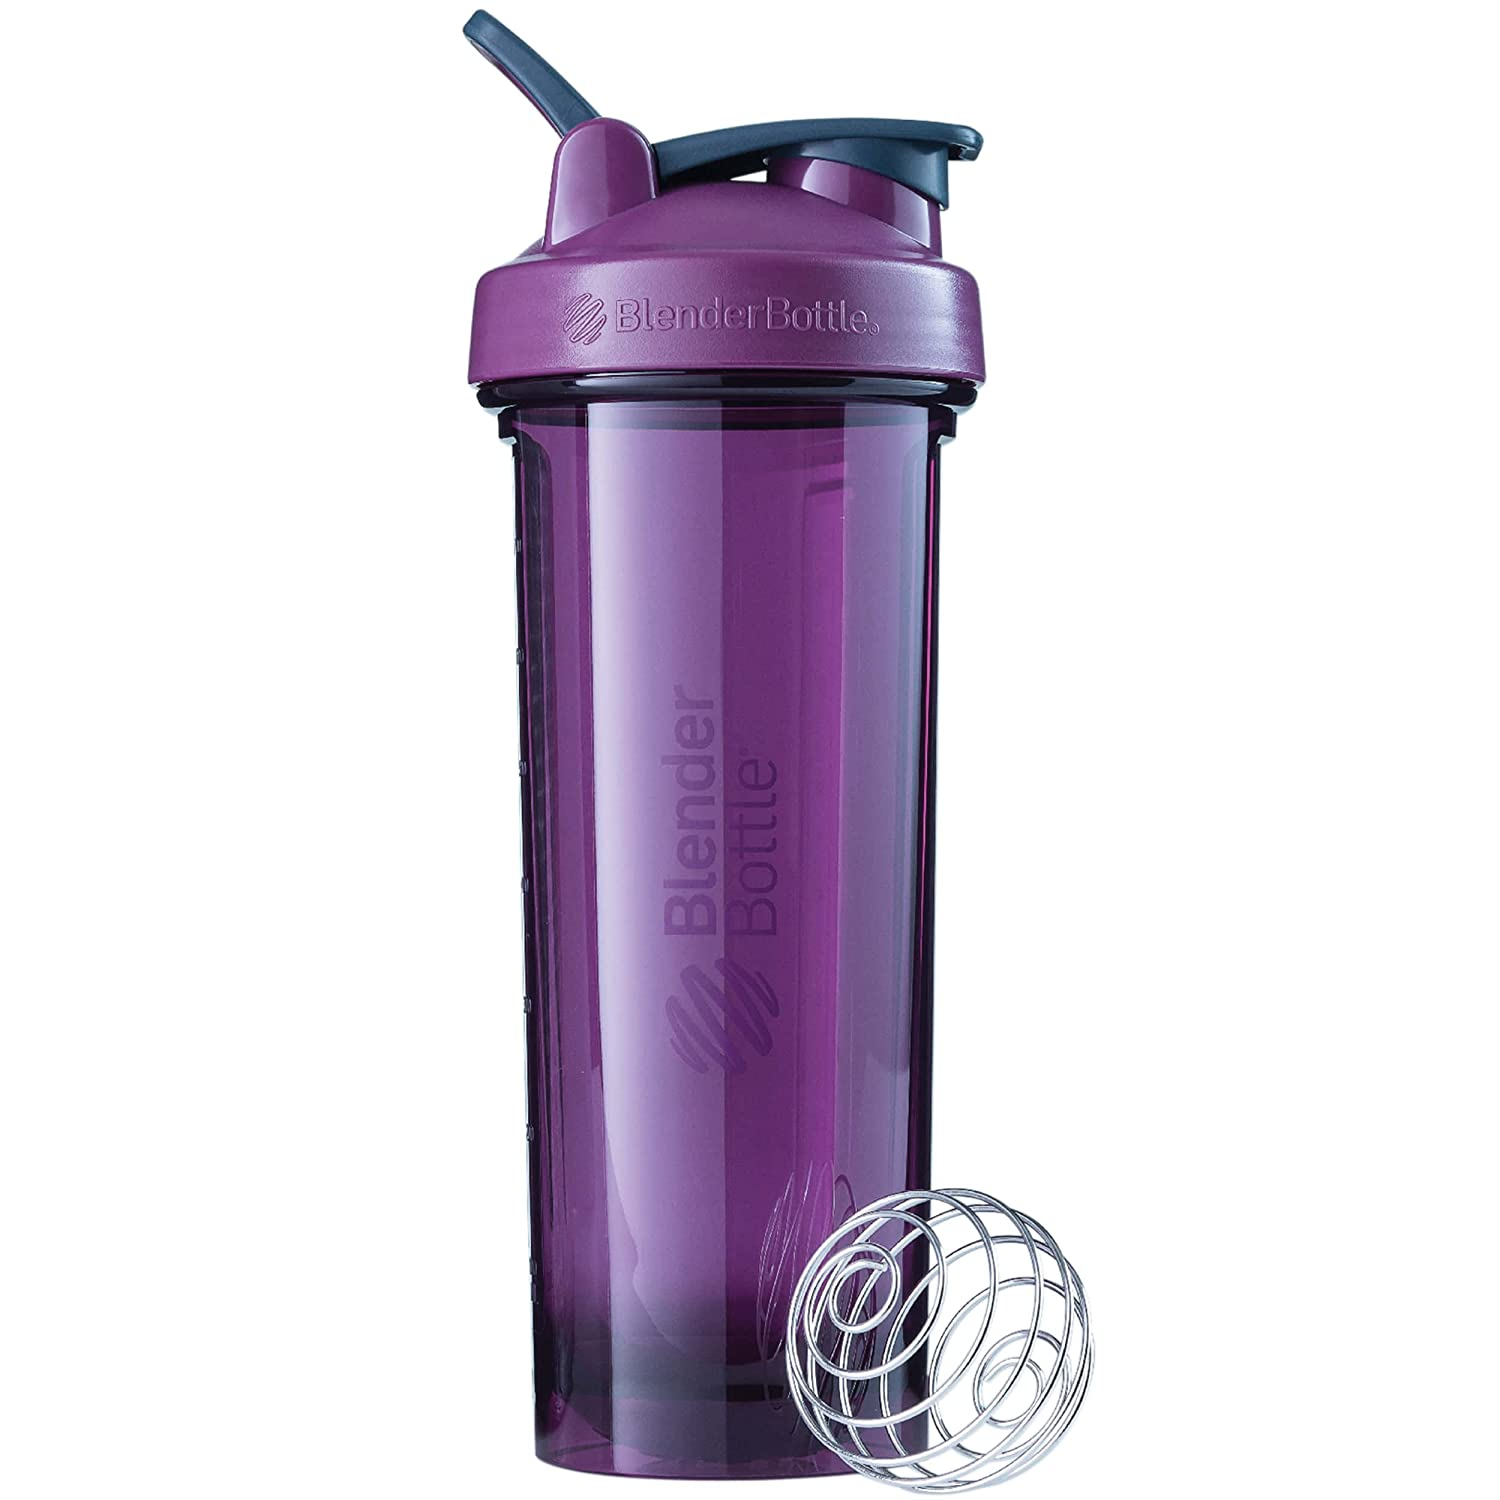 BlenderBottle Pro Series Shaker Bottle, 32-Ounce, Plum